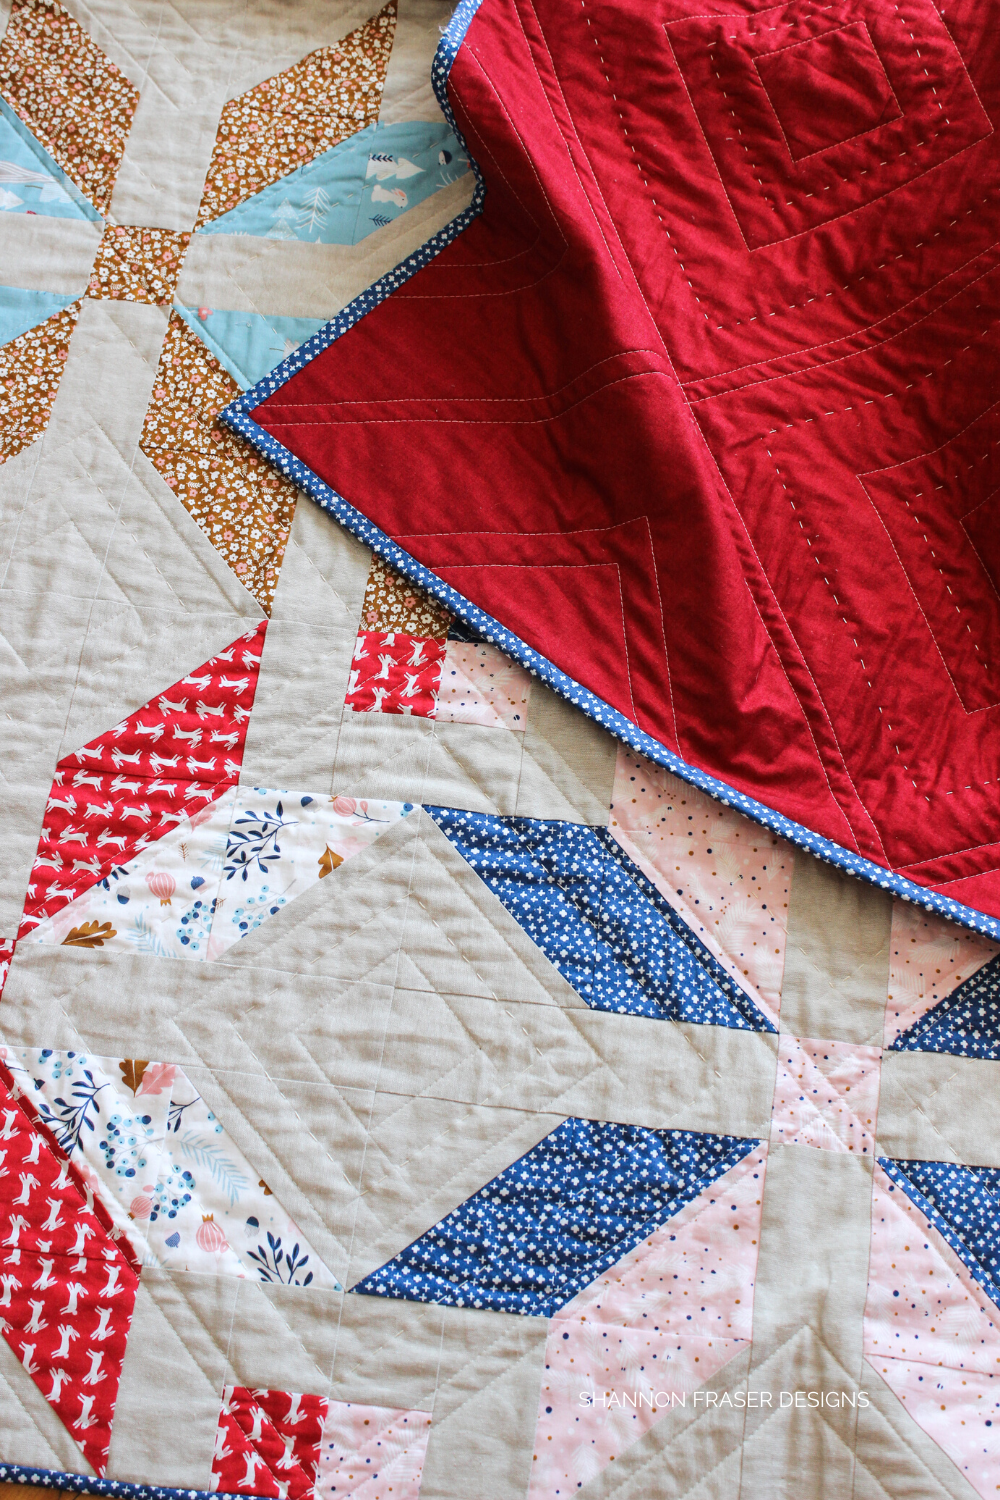 Winter Star lap quilt in blue, pink, red, beige and linen featuring machine and hand quilting details on this holiday version | Fat quarter friendly modern quilt pattern | Shannon Fraser Designs #handquilted